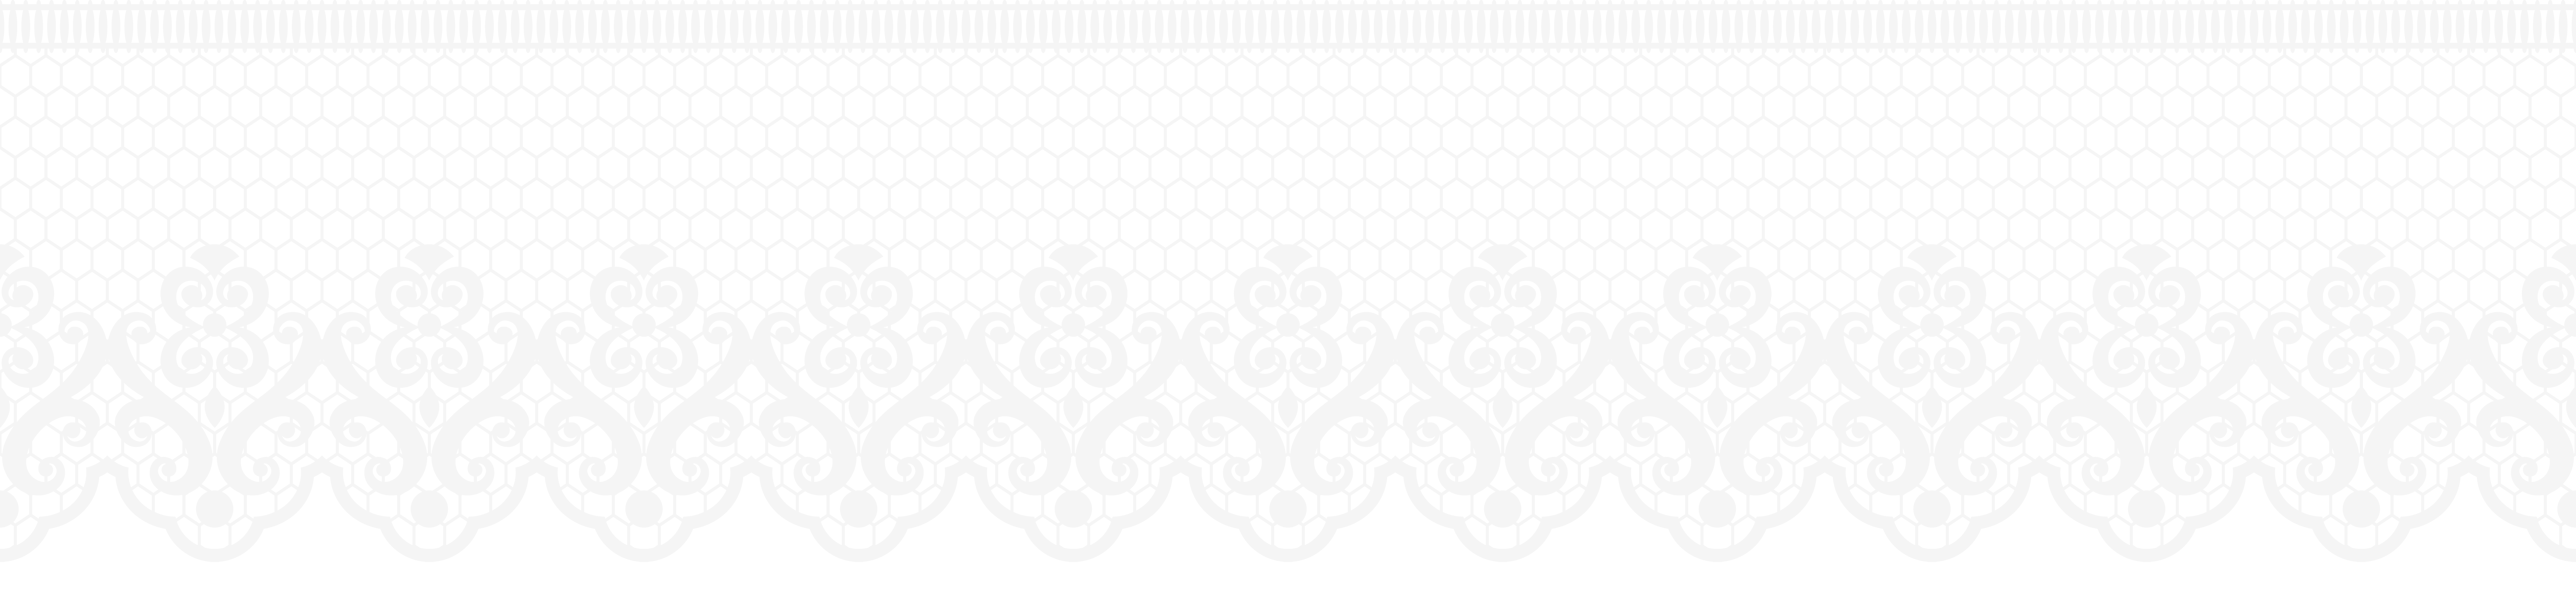 banner library library Black and white product. Lace border clipart